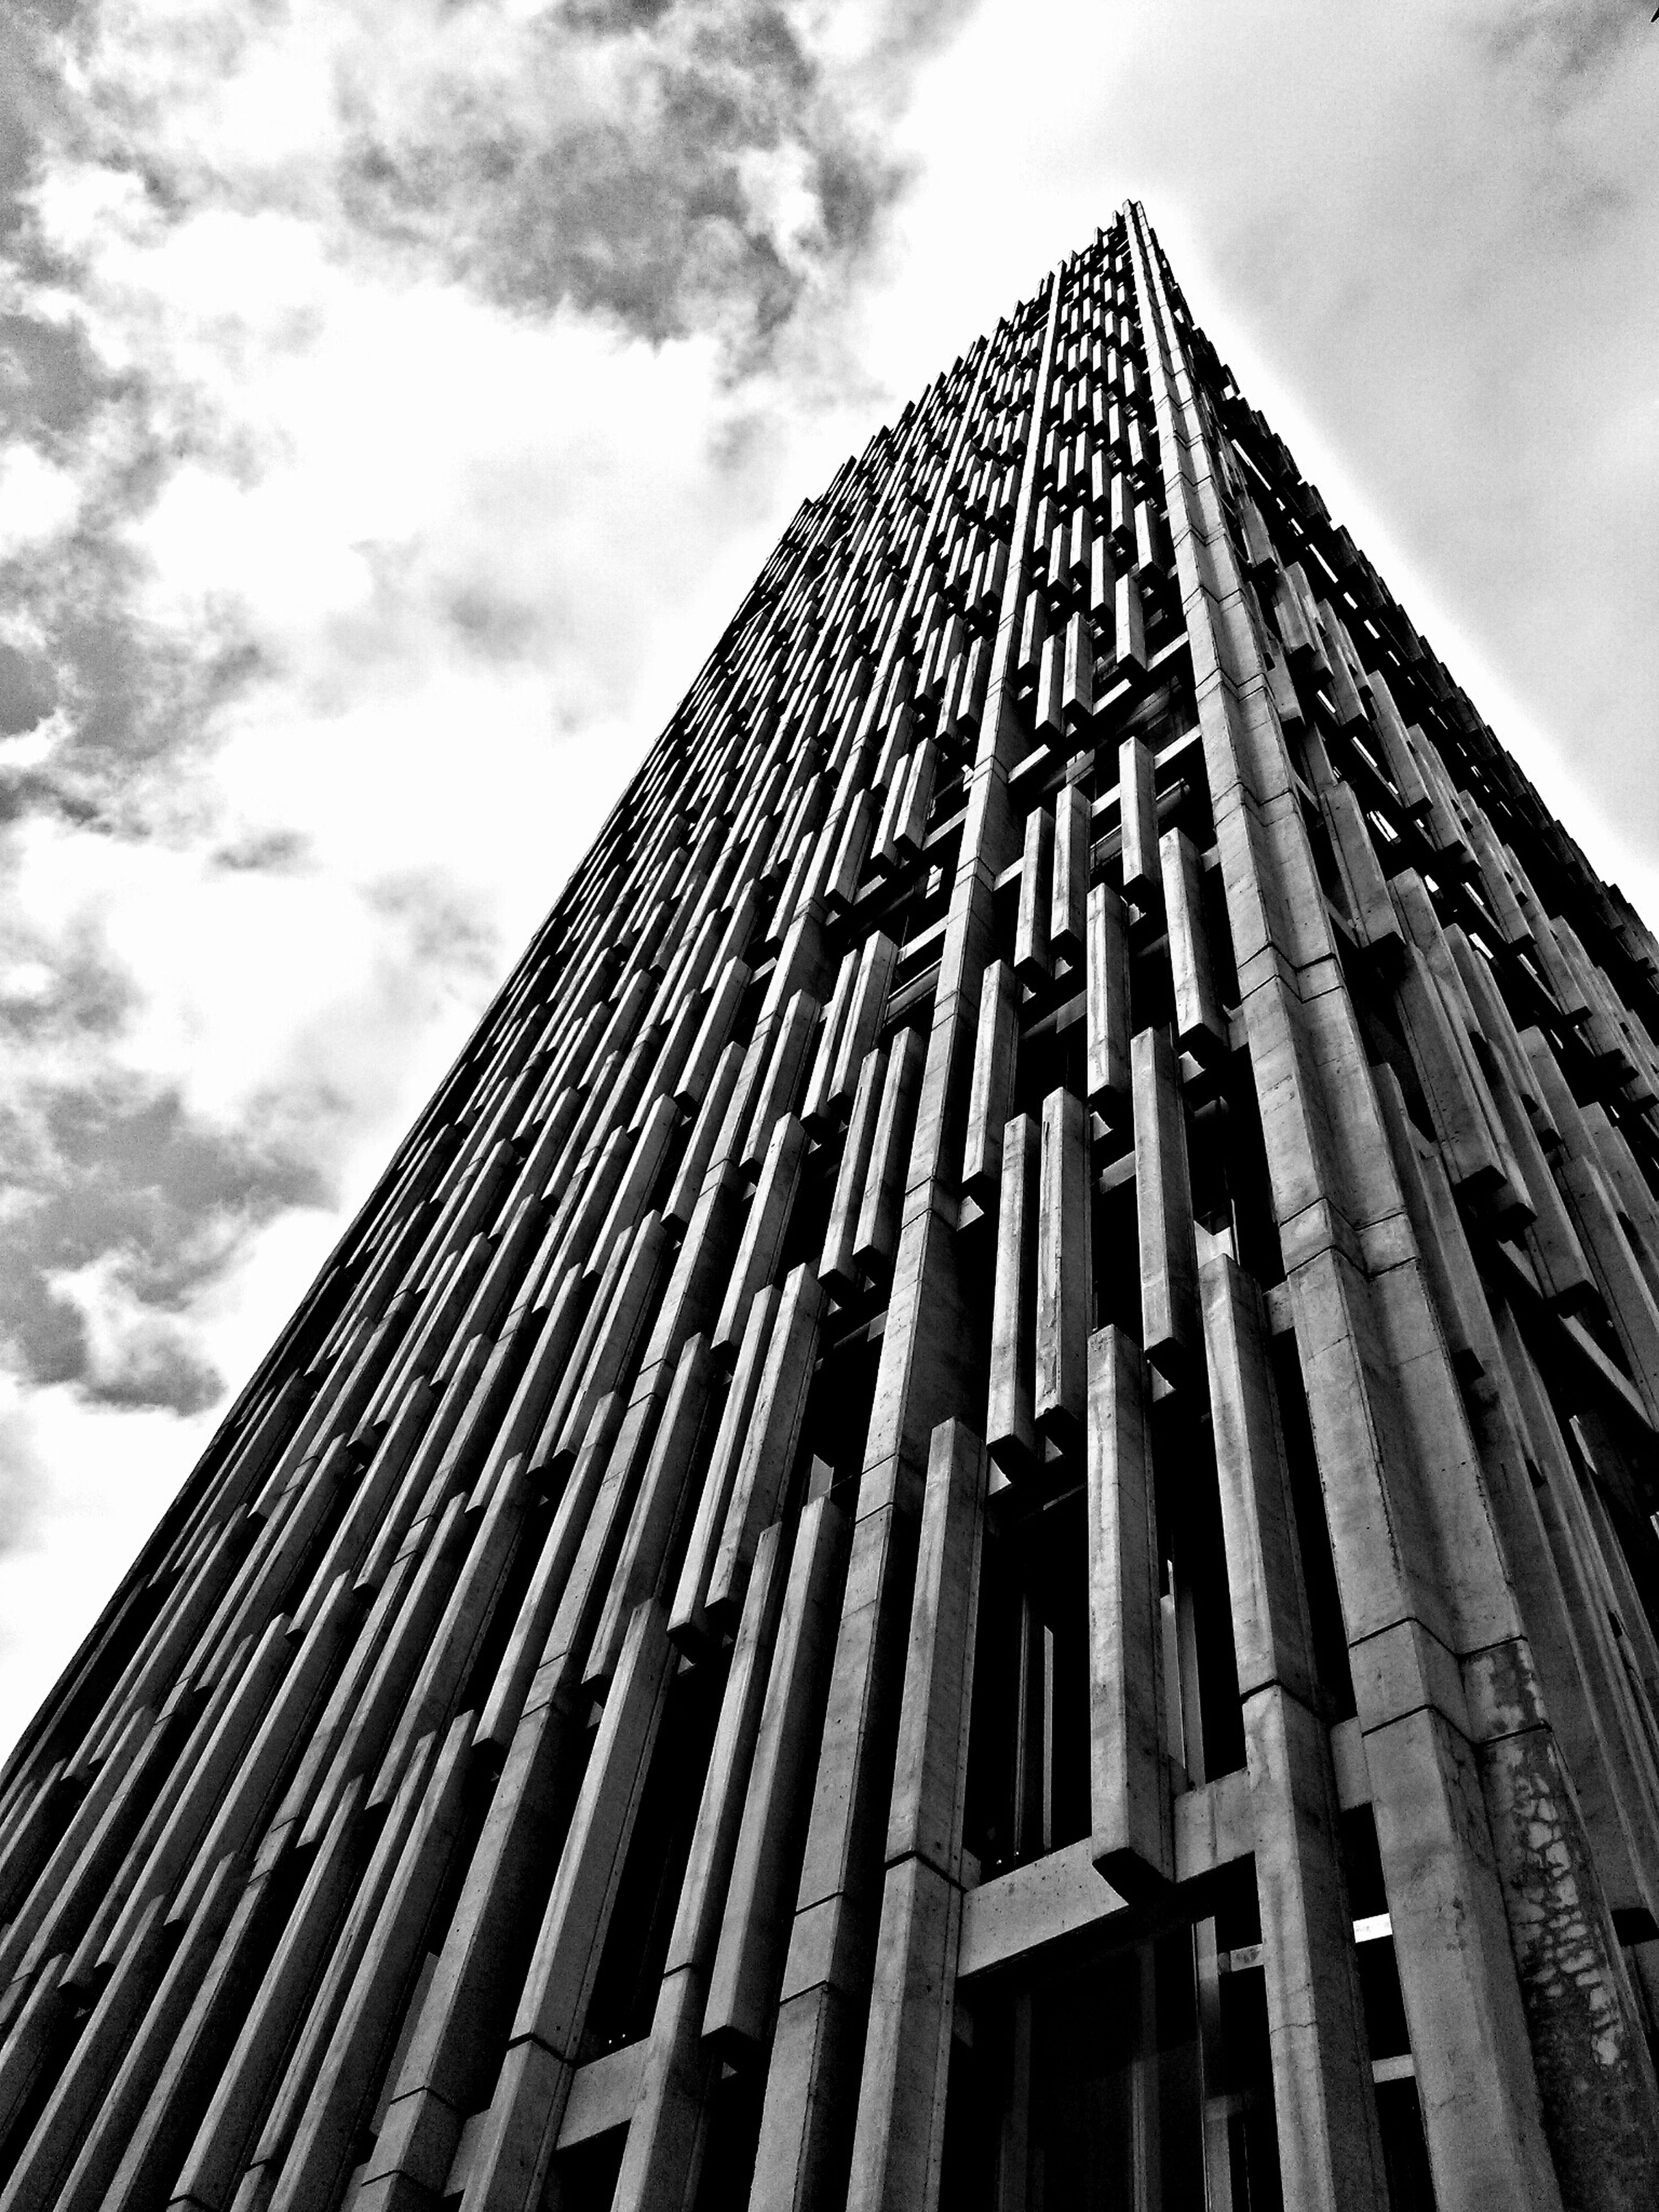 architecture, low angle view, built structure, building exterior, sky, tall - high, cloud - sky, tower, modern, skyscraper, cloudy, office building, city, cloud, tall, building, day, outdoors, no people, glass - material